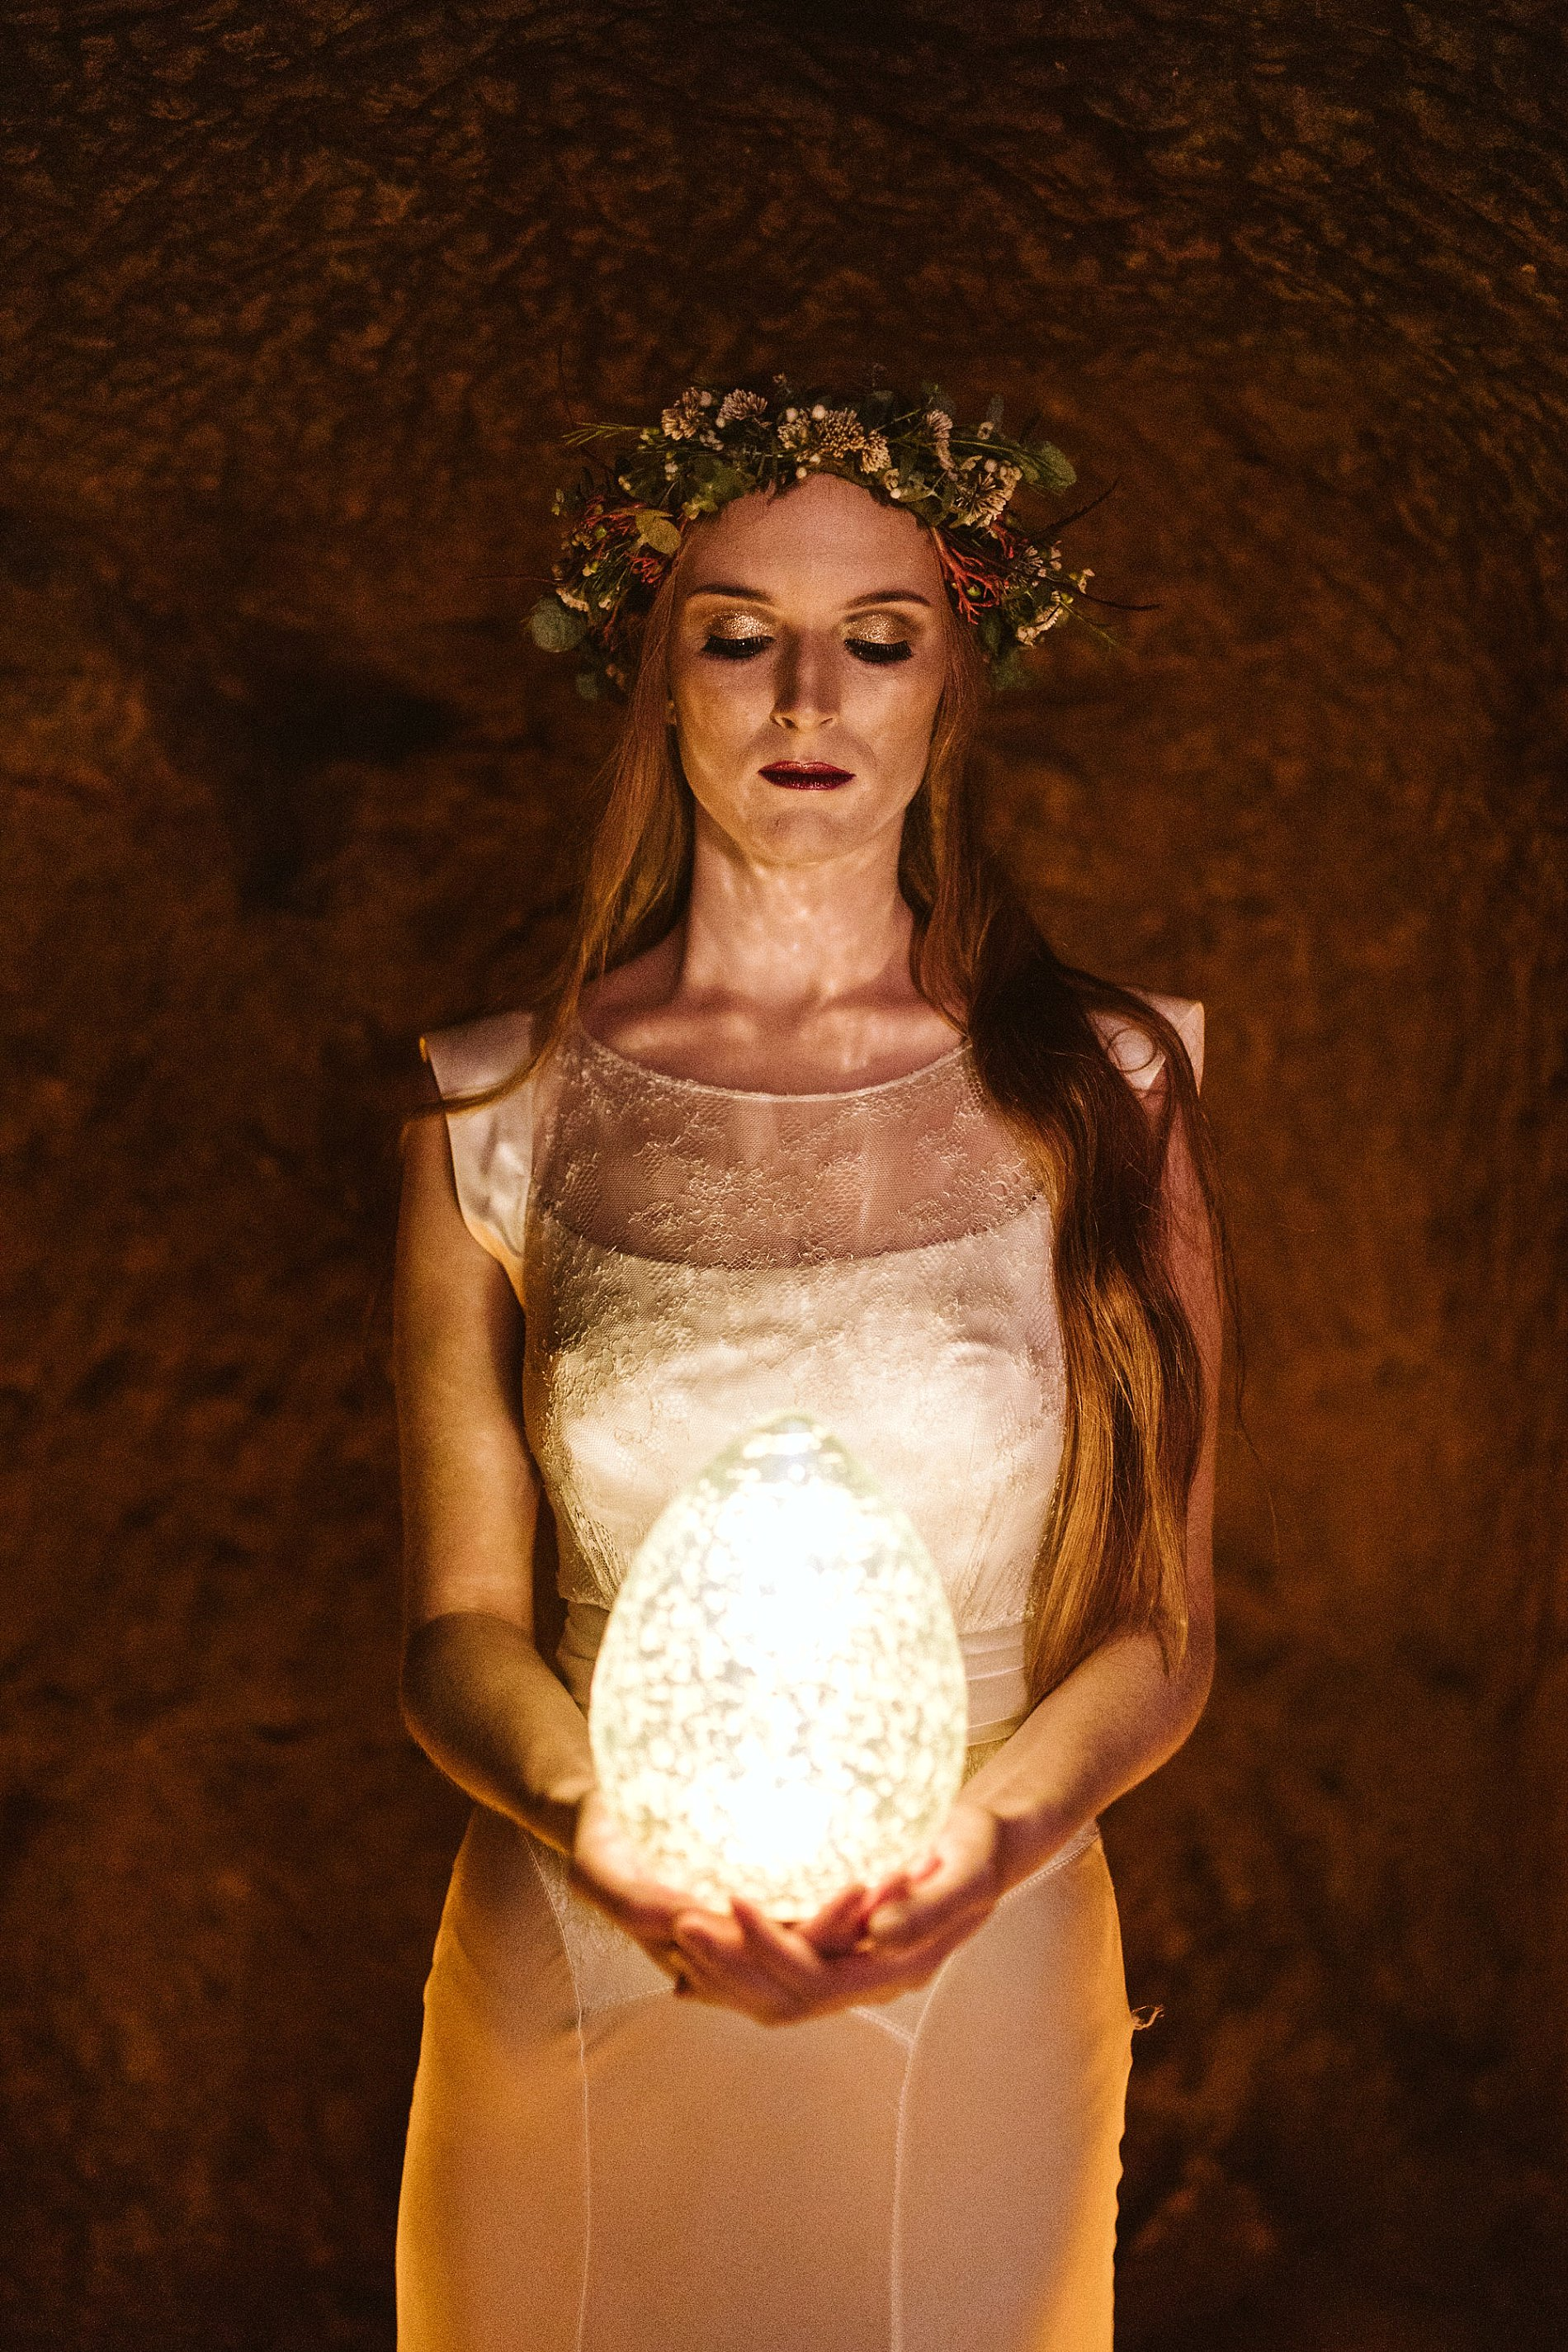 Game of Thrones Creative Bridal Shoot (c) Freya Raby (28)